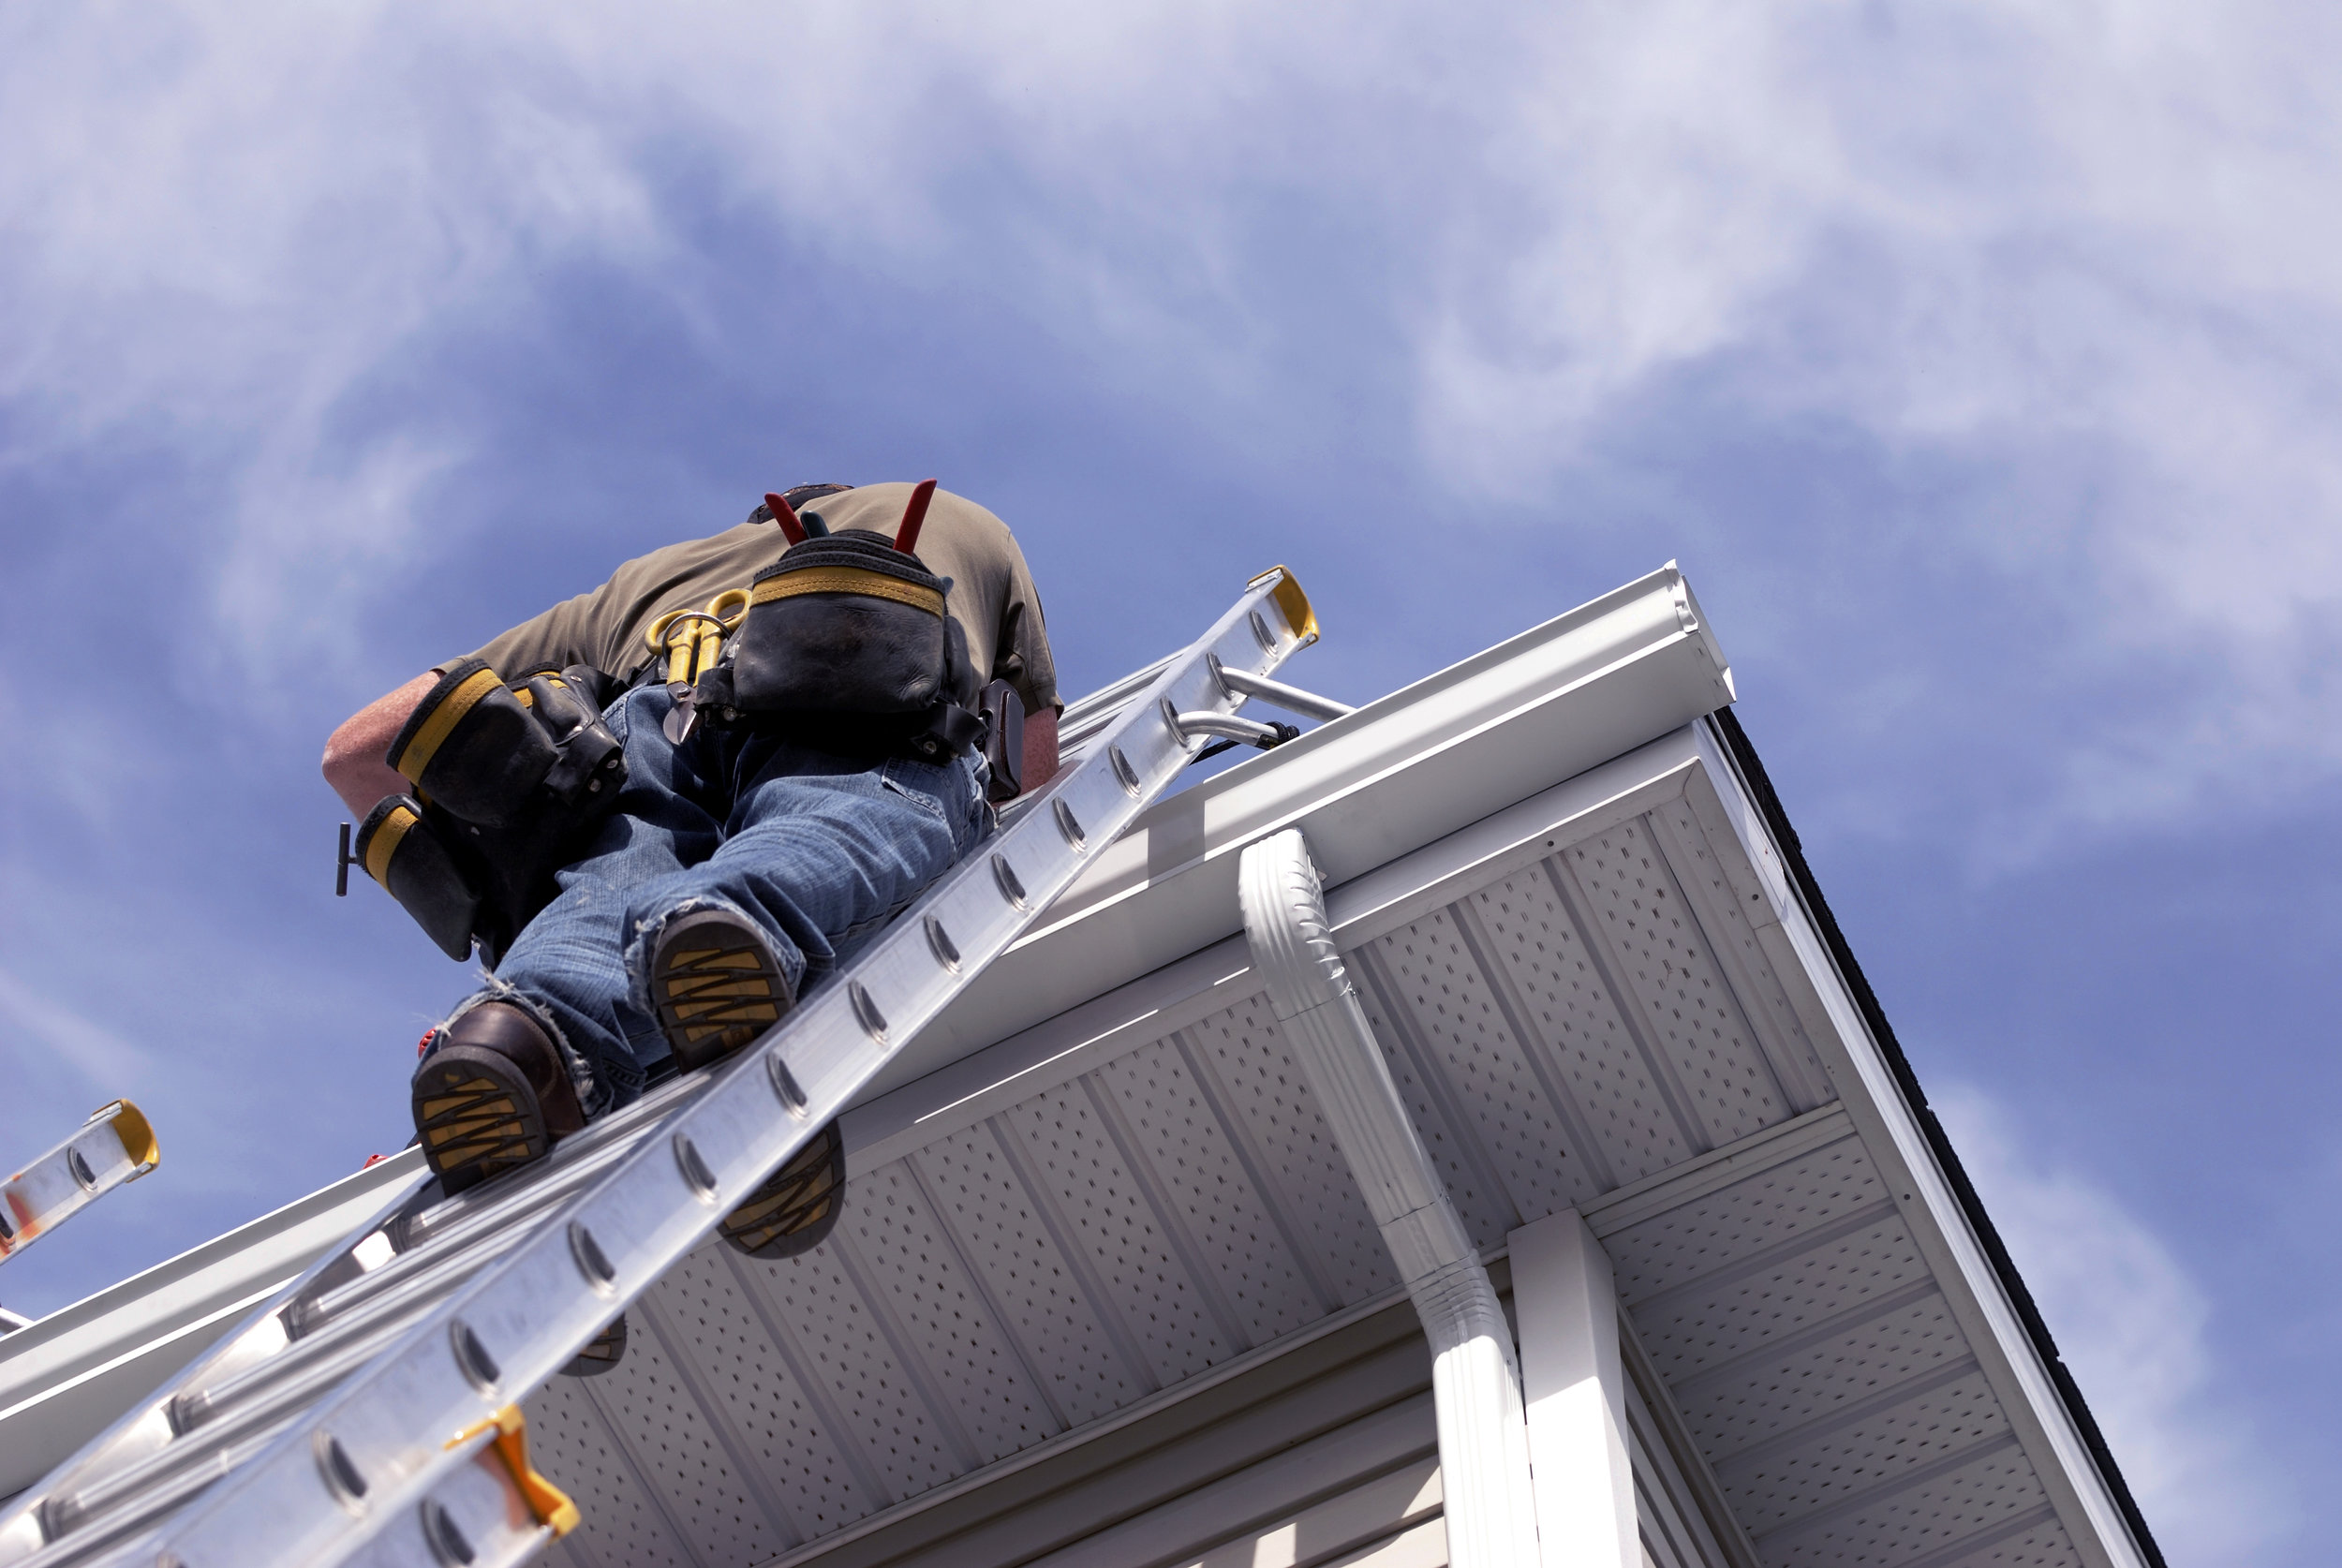 1. Inspect - During installation, our installers will review your gutter system to make sure there are not any other concerns and check to identify any other problem or concerns. We do not want to install on a faulty gutter system-Remove ineffective gutter guards.-Install new gutters if necessary.